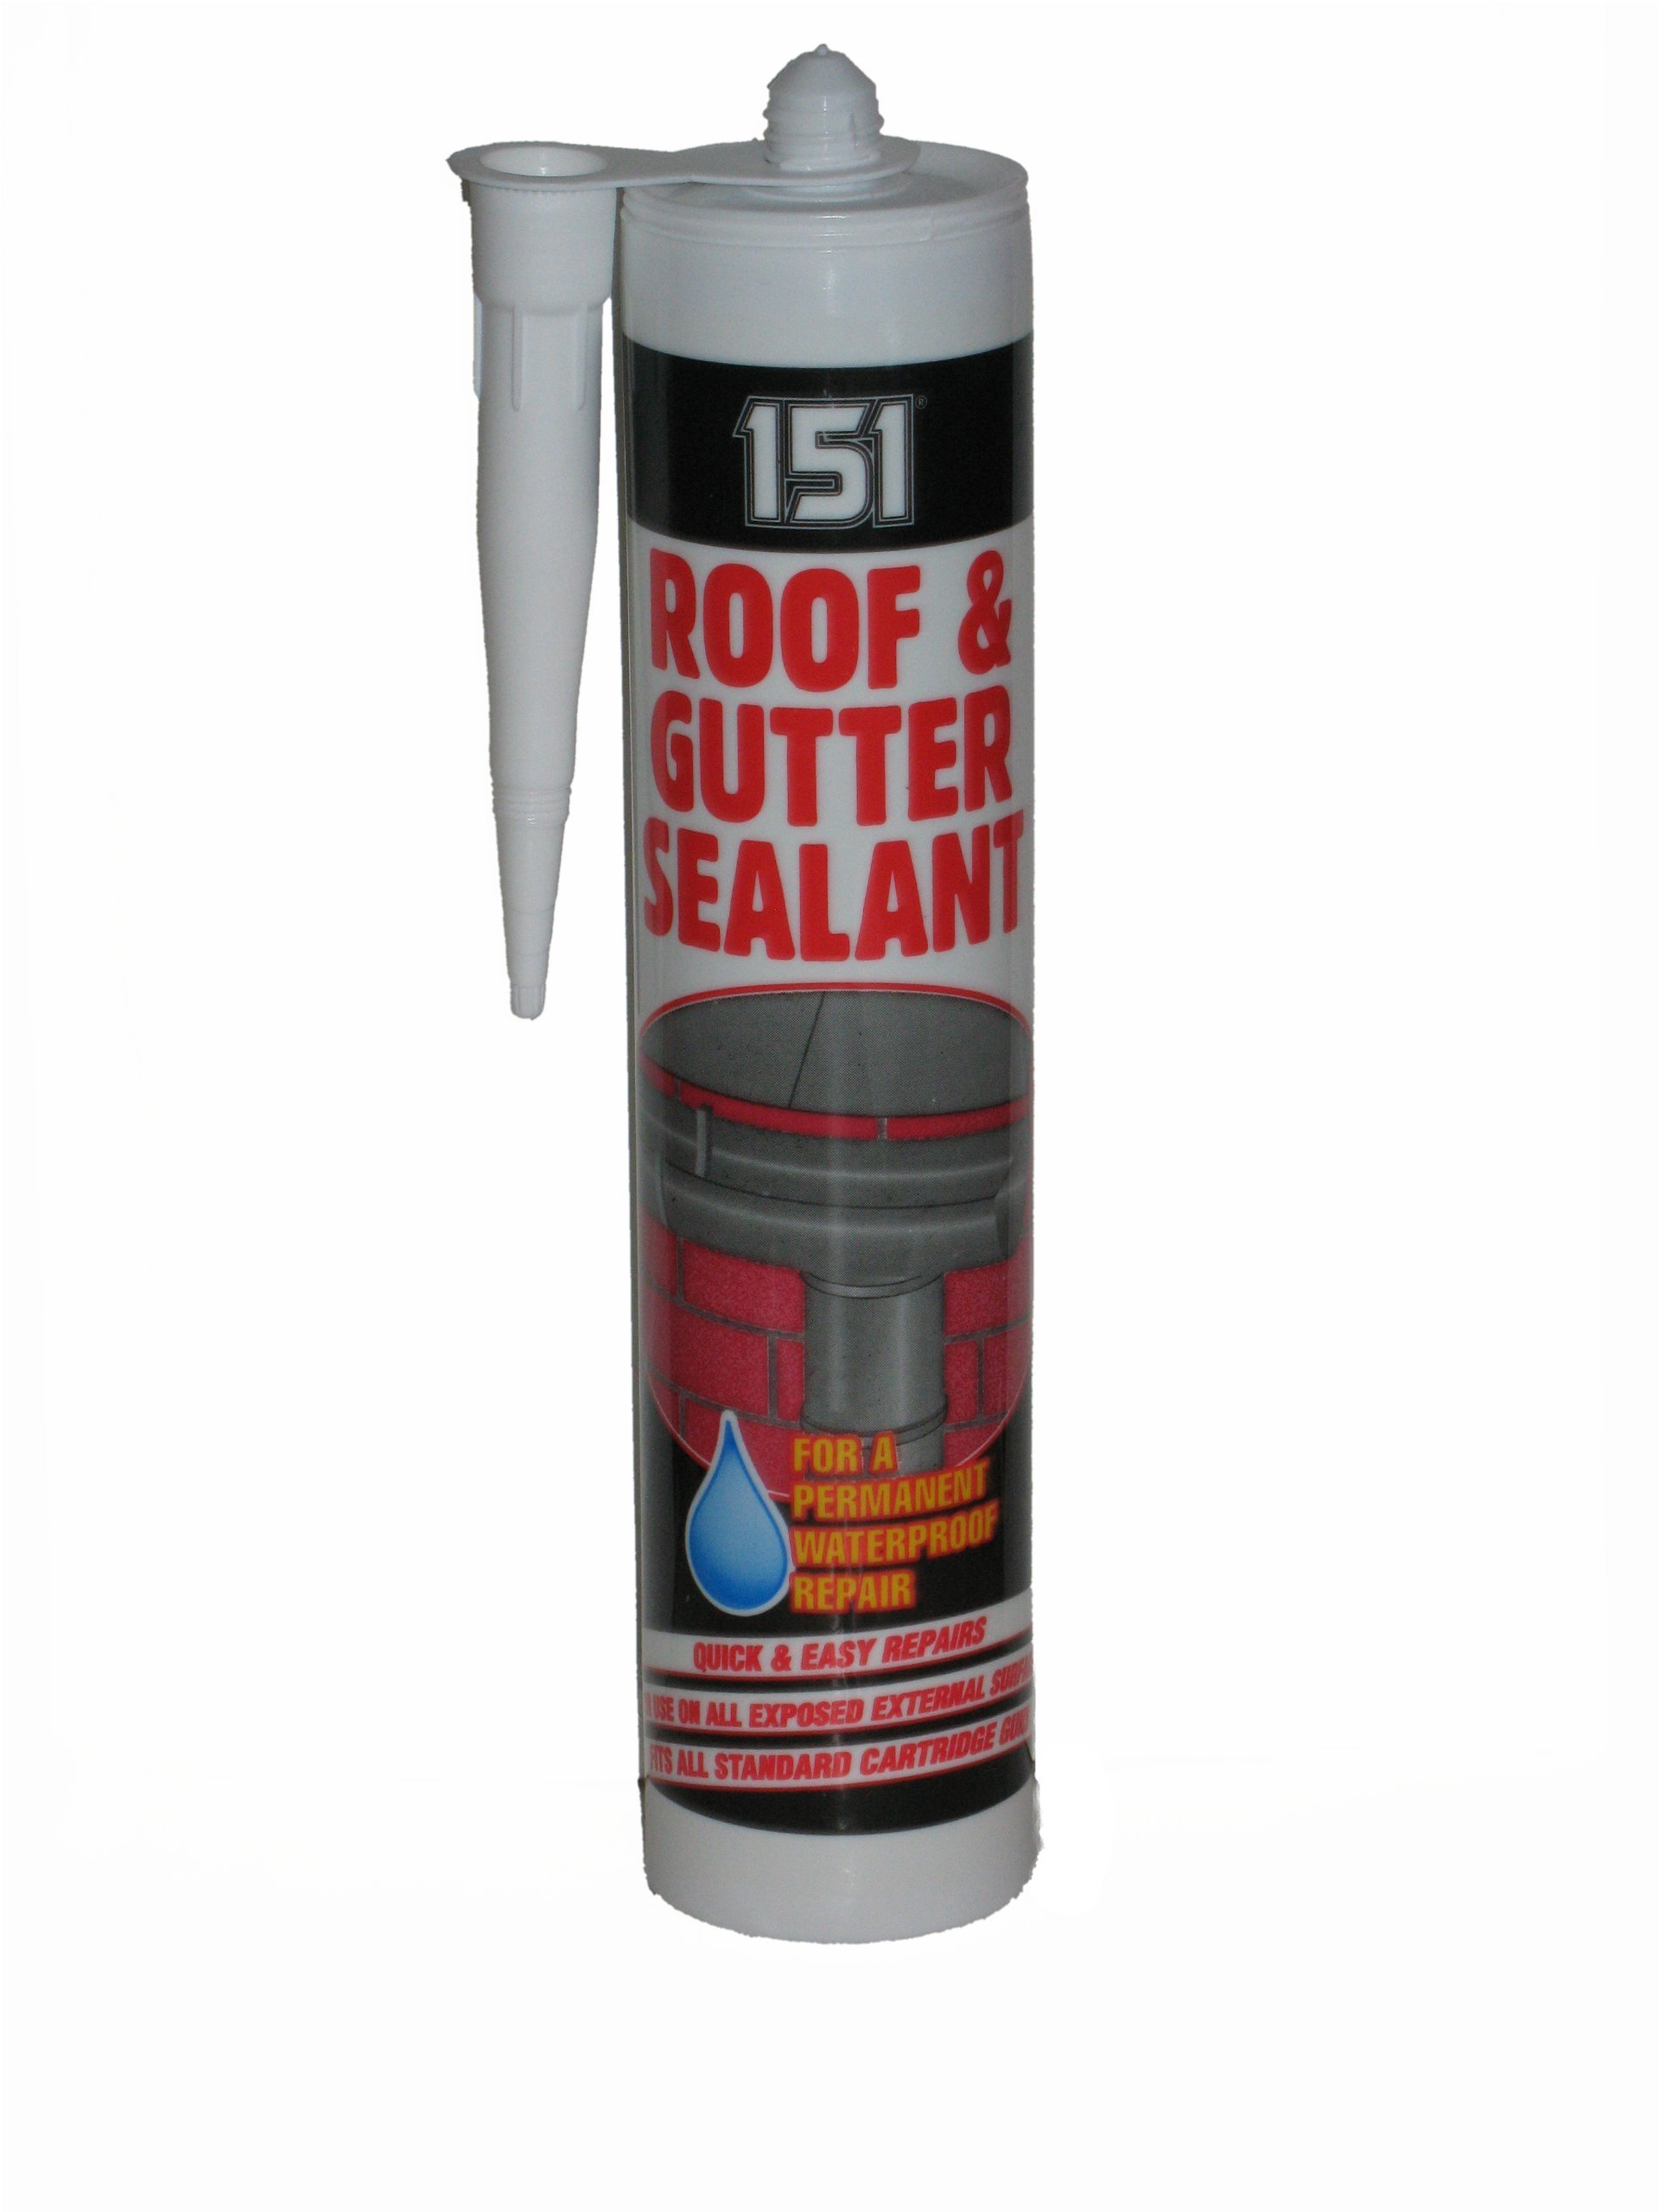 151 Products 151 Roof & Gutter Sealant